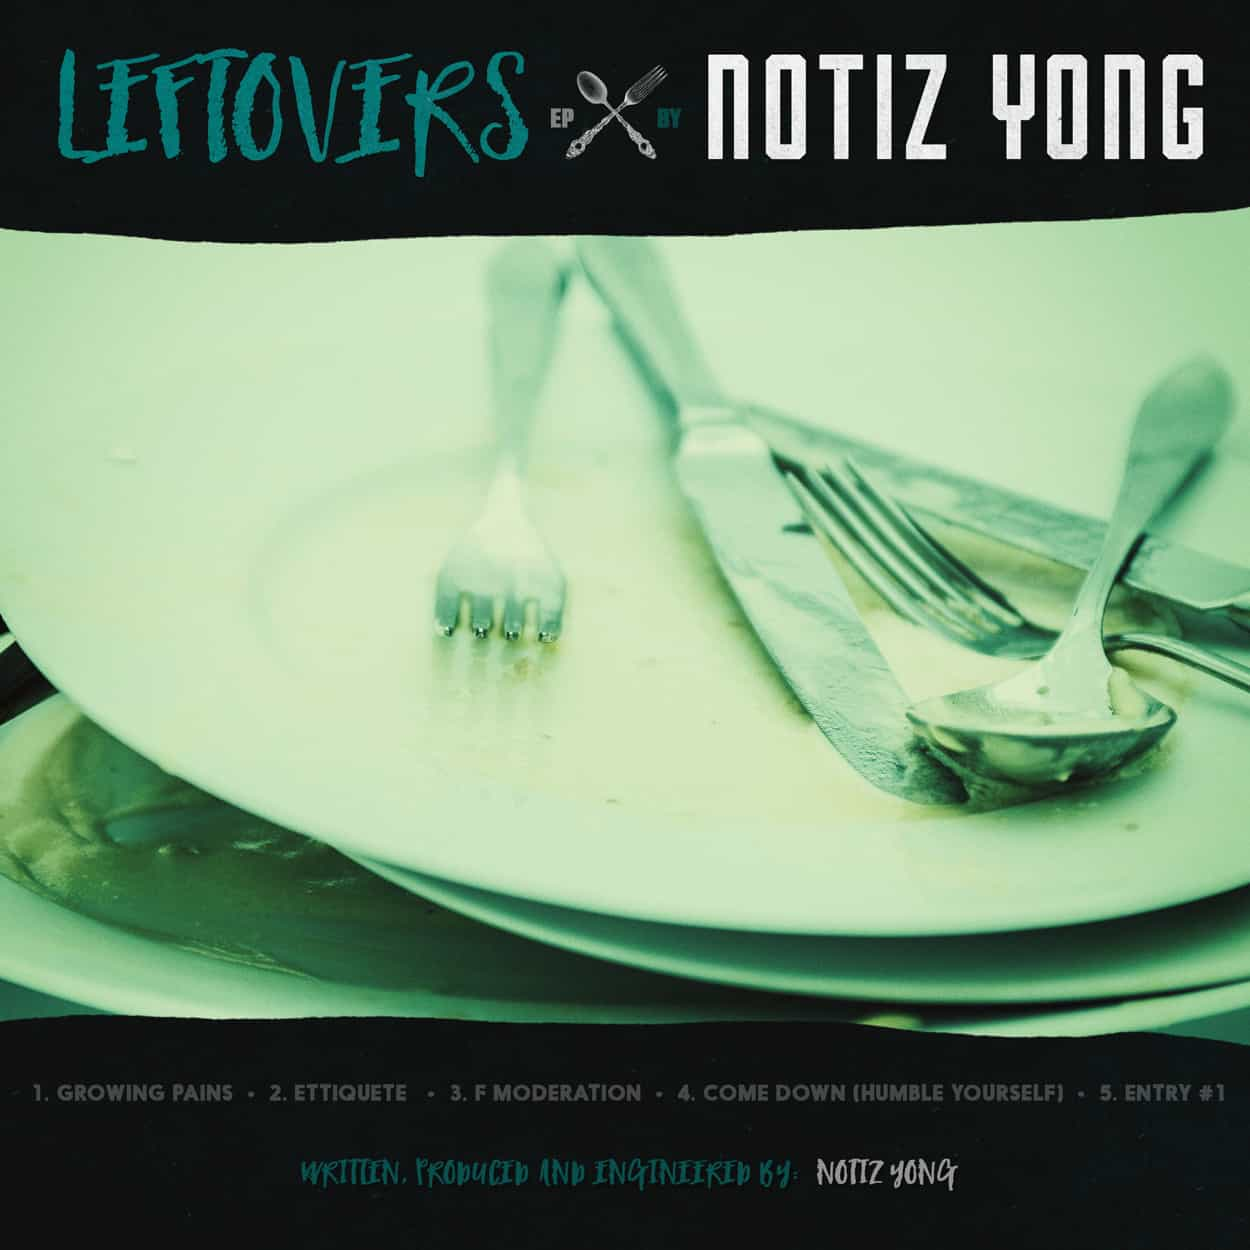 notiz yong - leftovers ep - album art design